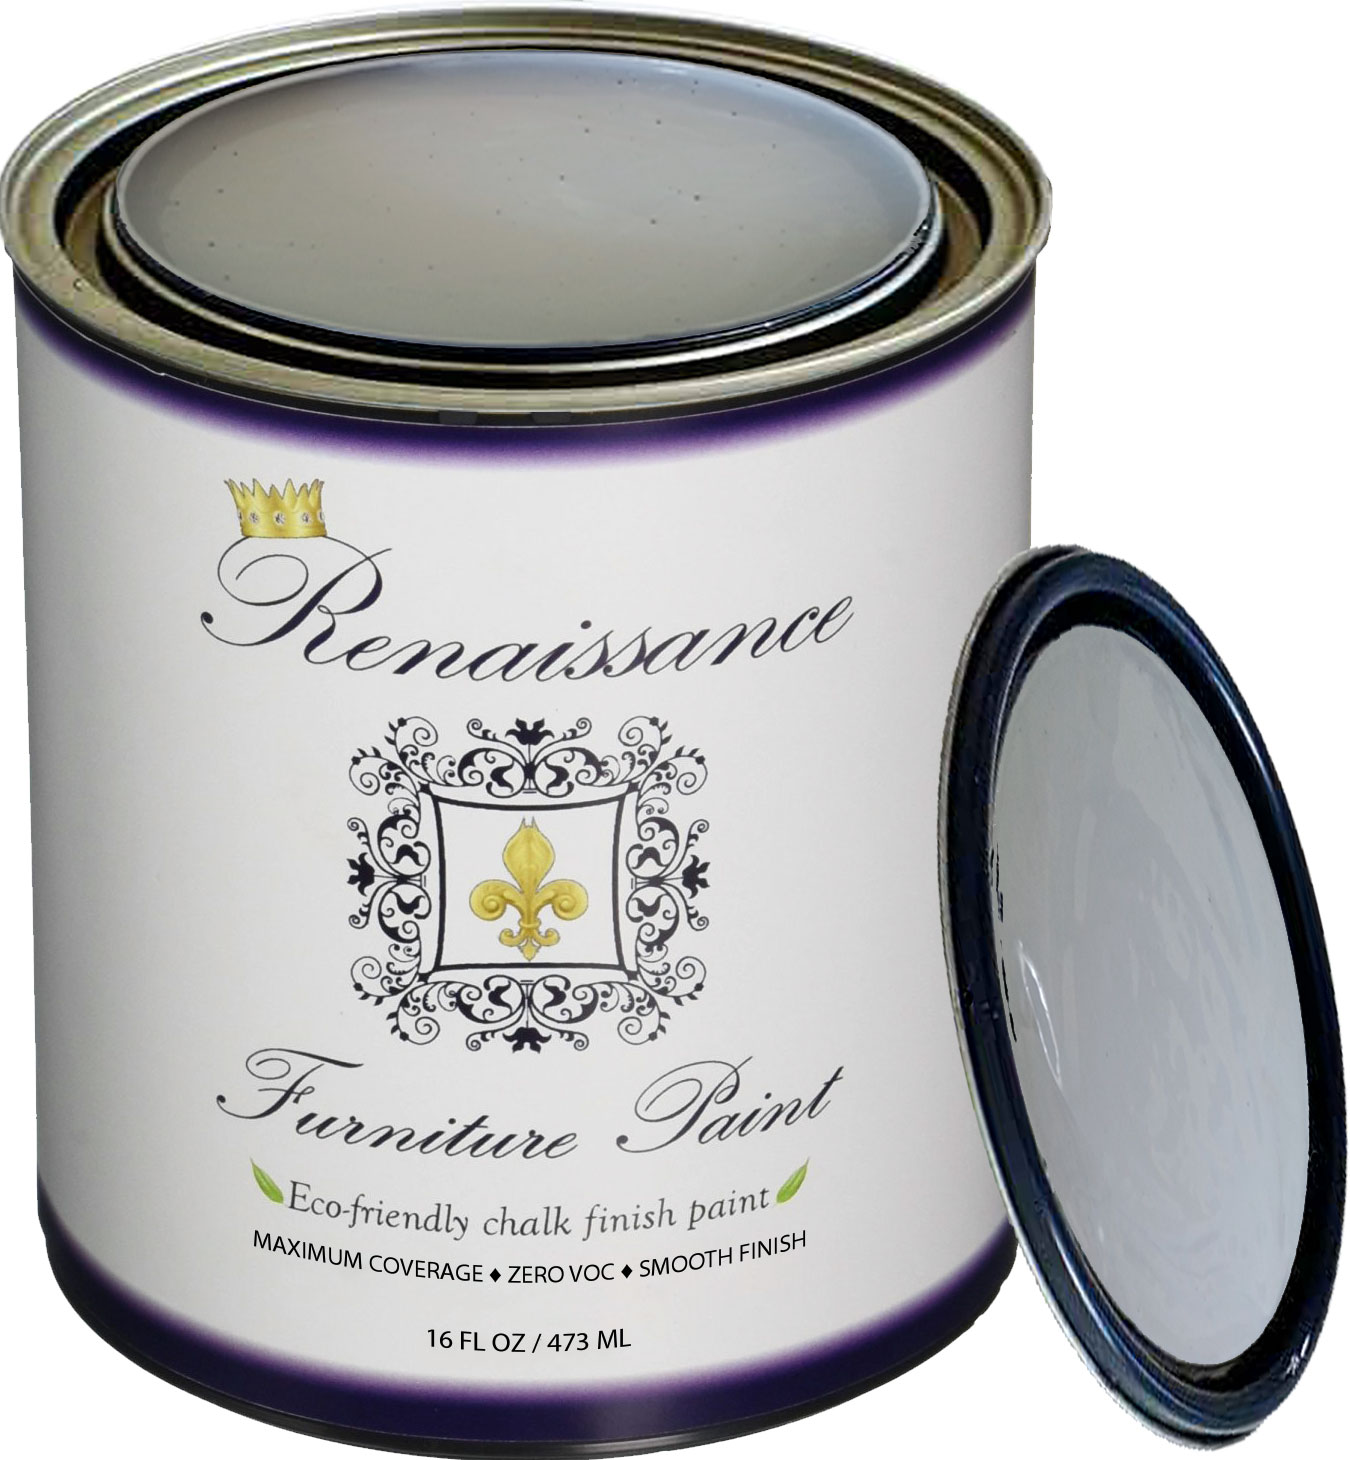 Renaissance Chalk Finish Paint - Stone Castle Pint (16oz) - Chalk Furniture & Cabinet Paint - Non Toxic, Eco-Friendly, Superior Coverage